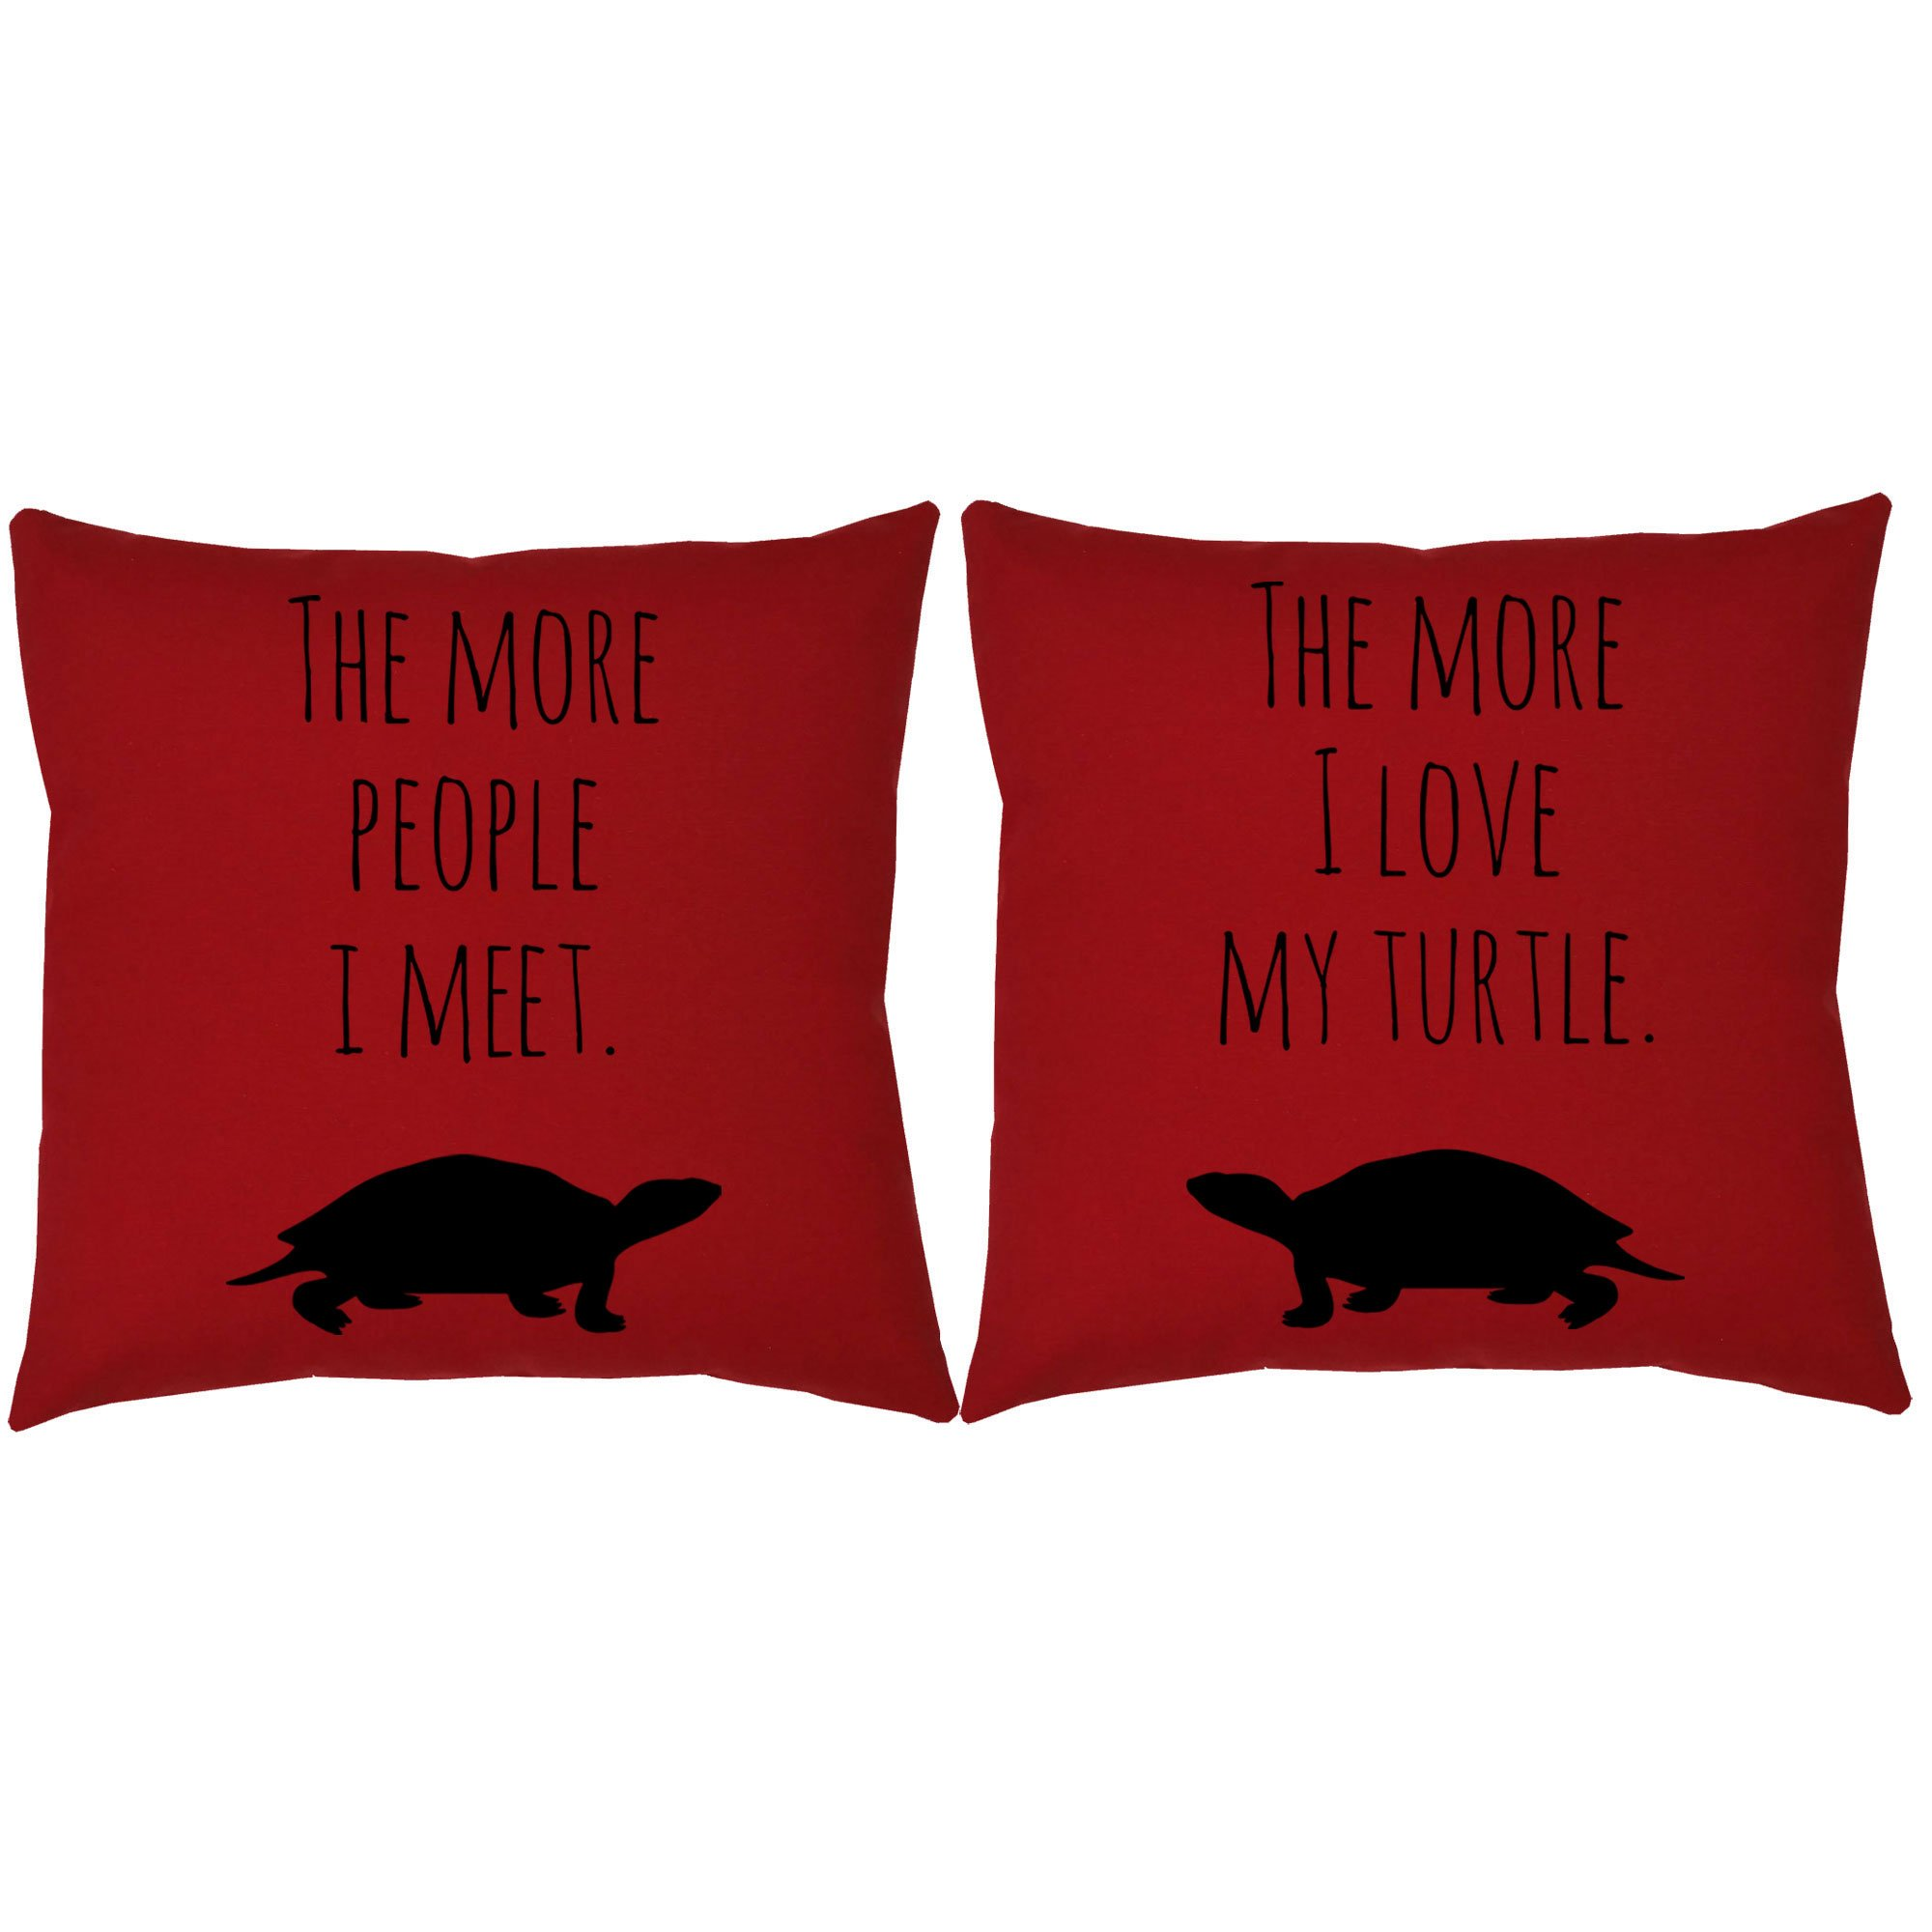 Set of 2 RoomCraft I Love My Turtle Throw Pillows 20x20 Square Red Cotton Cushions